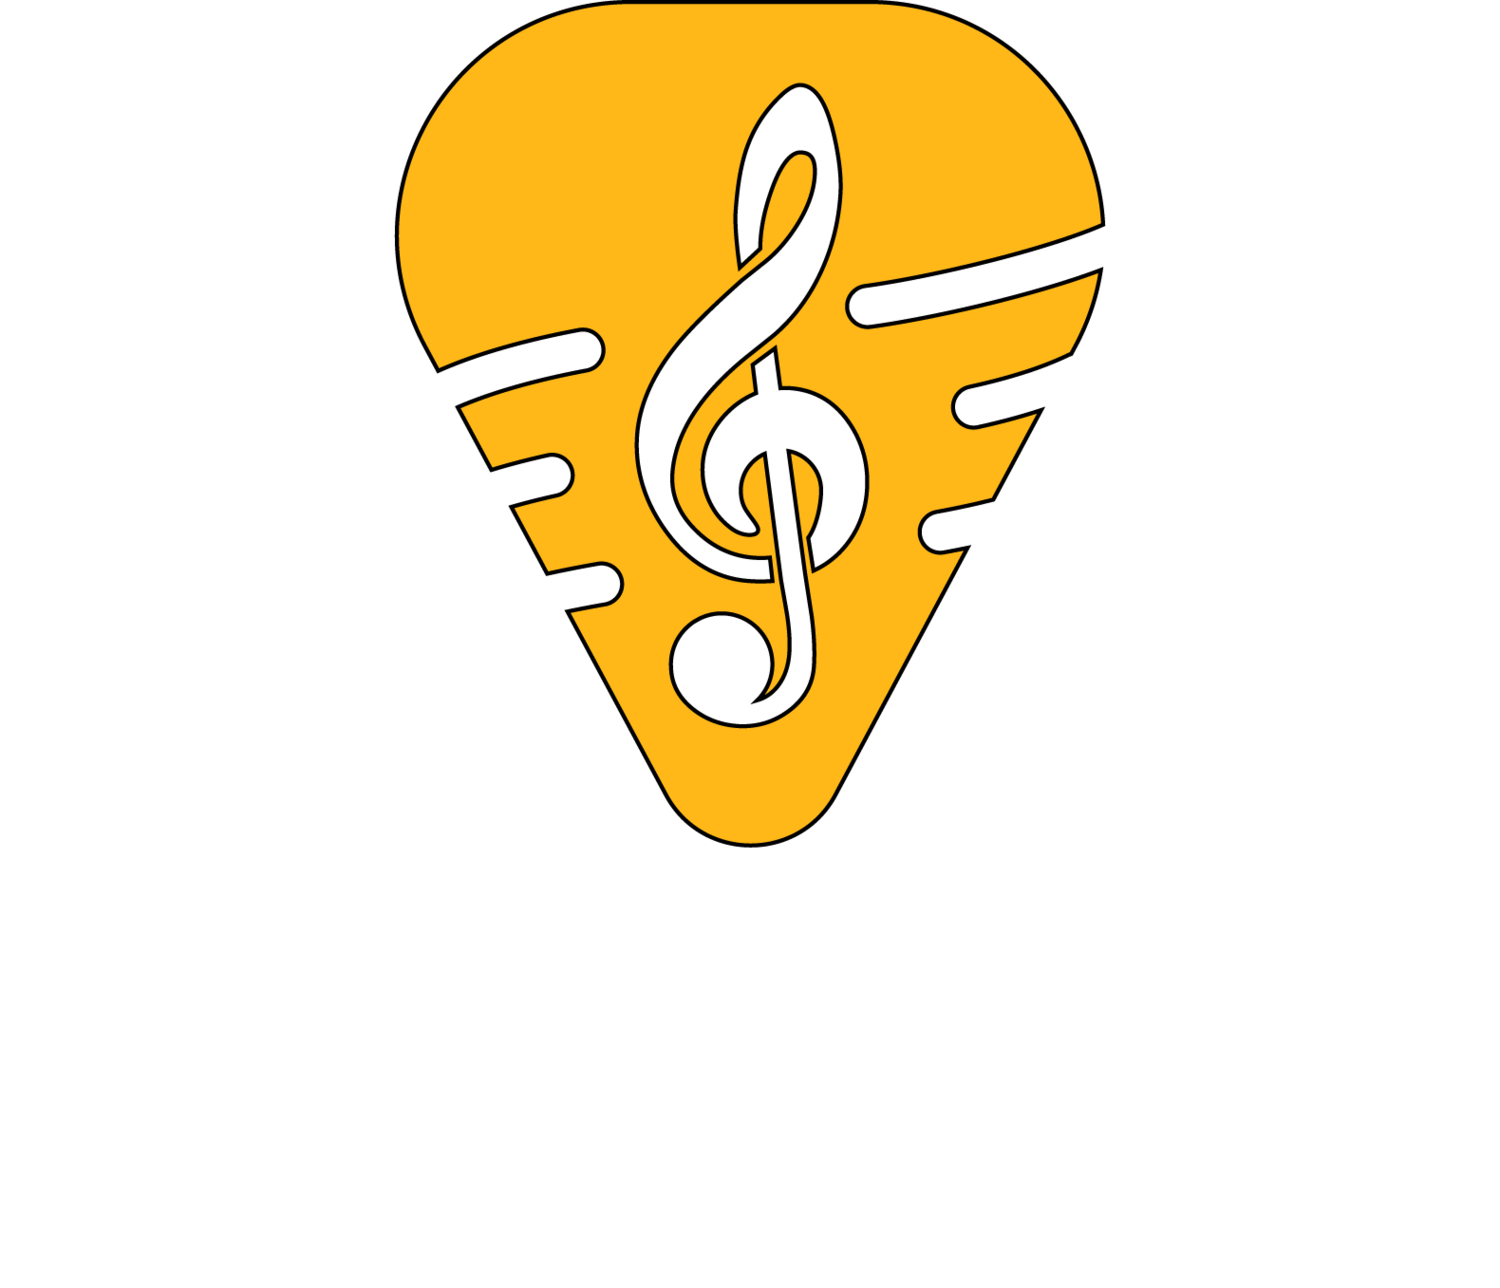 Music Lessons in Caldwell, West Orange, Livingston |The Modern Music Academy